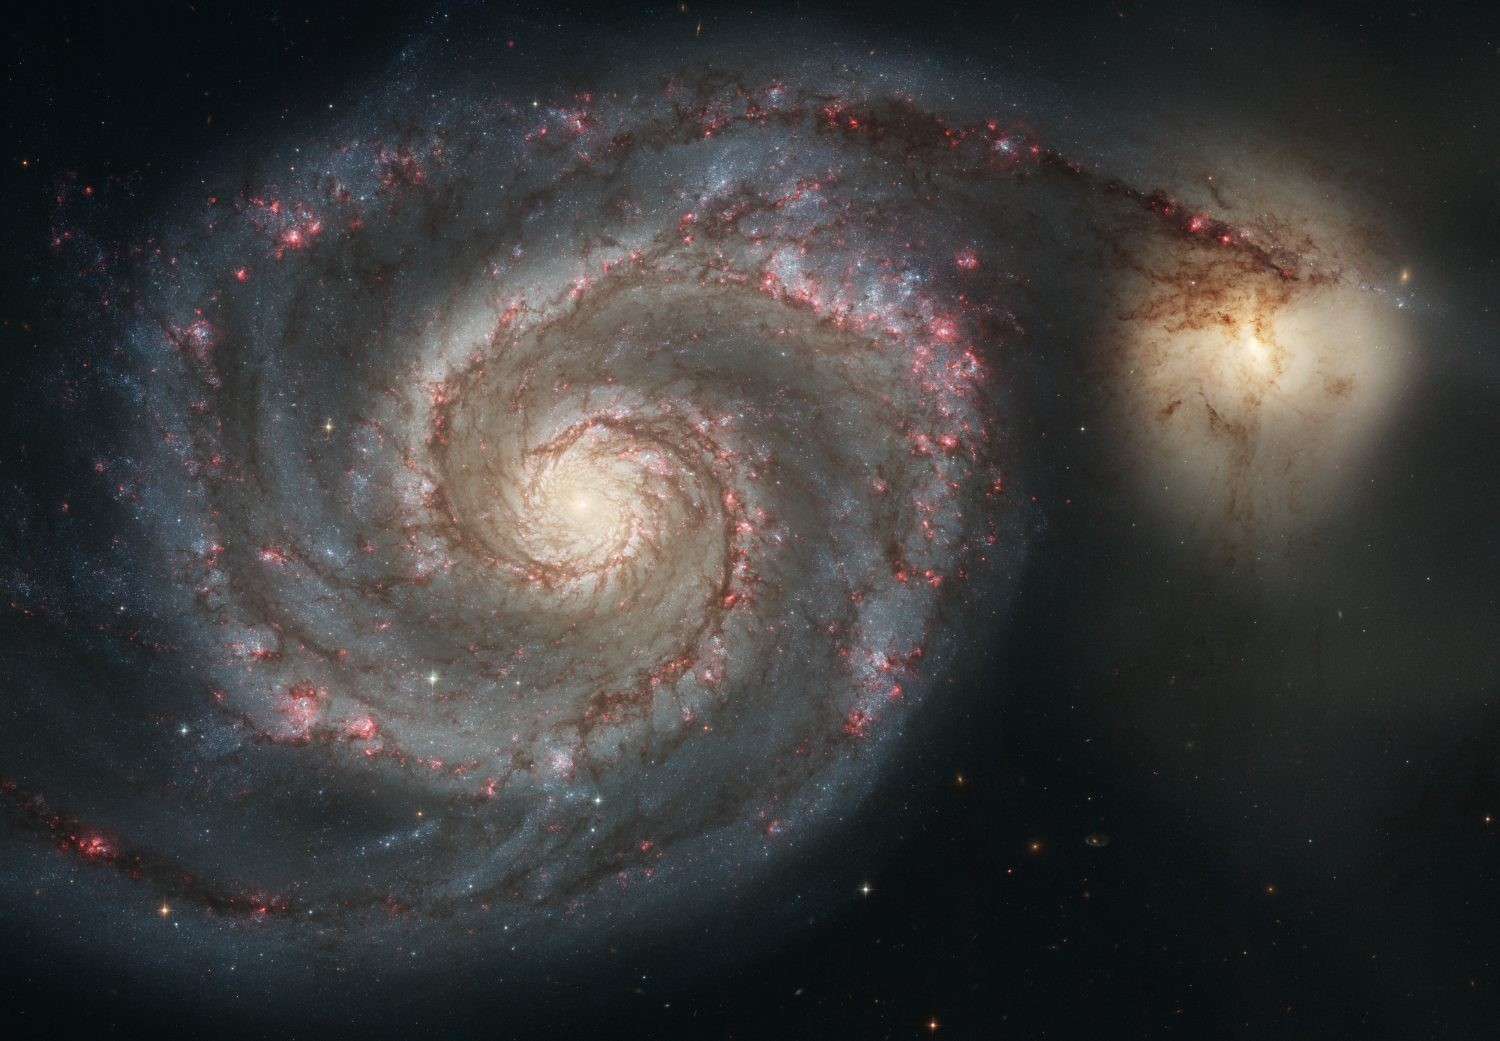 The iconic Whirlpool Galaxy, well-known due to its distinctive shape, seen here in a classic Hubble Space Telescope image. Credit: NASA, ESA, S. Beckwith (STScI), and The Hubble Heritage Team (STScI/AURA)